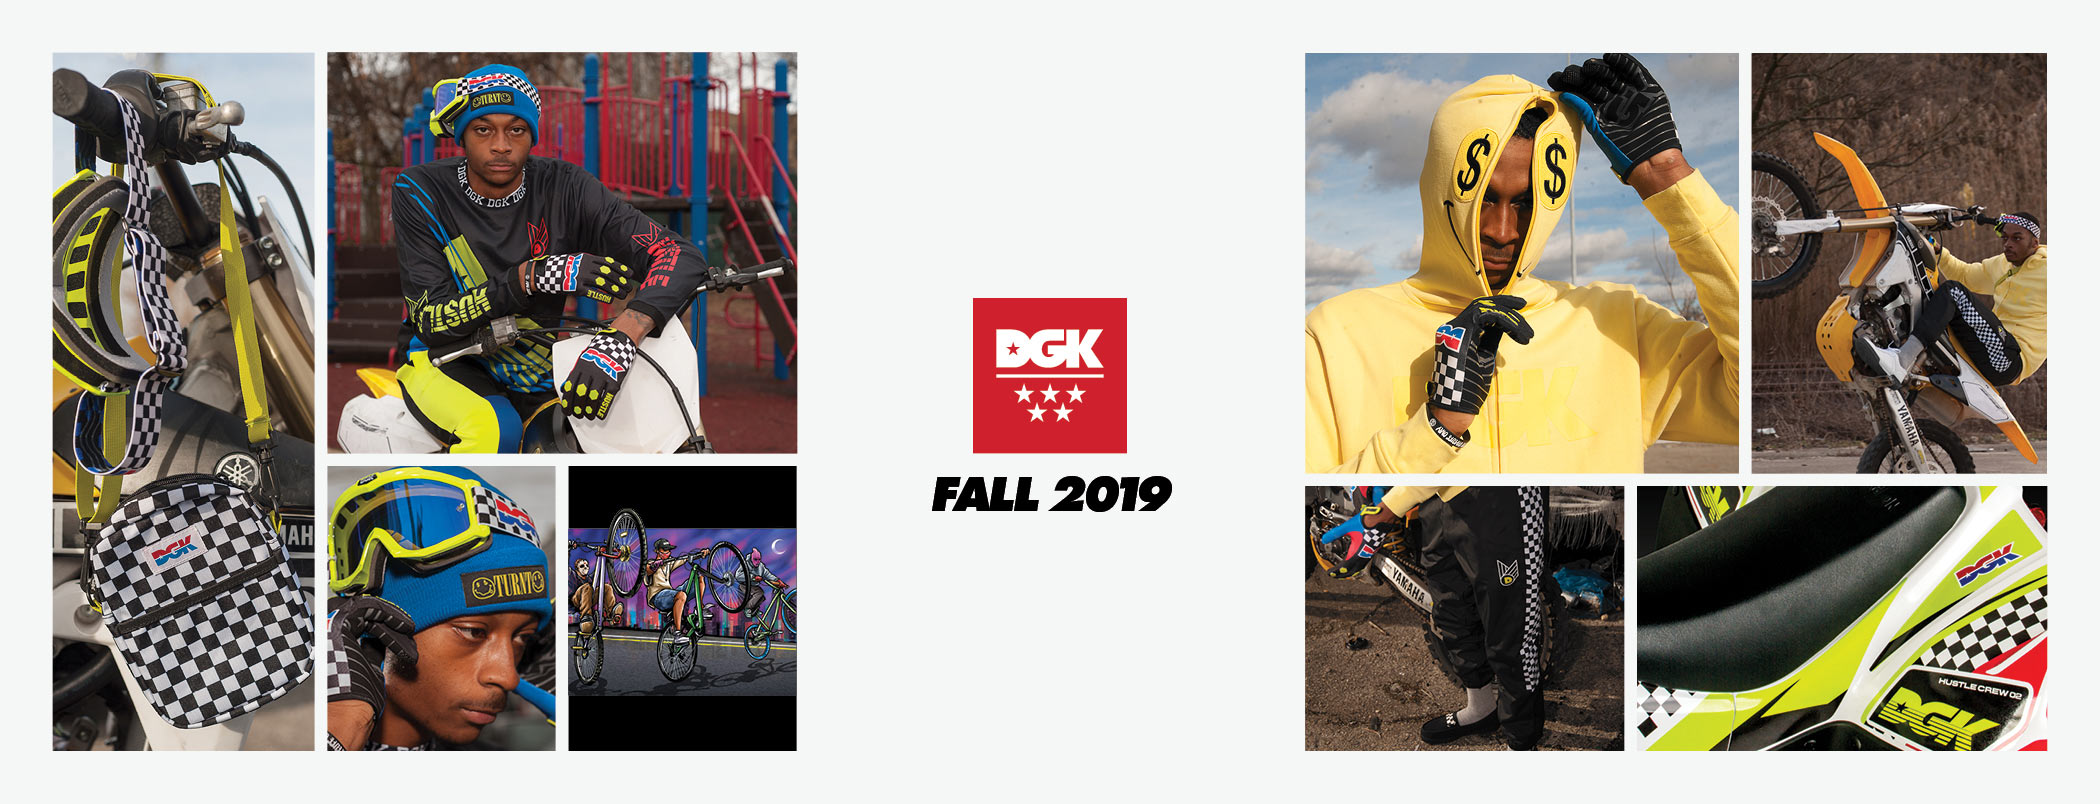 DGK Fall 19 Team Hustle Collection